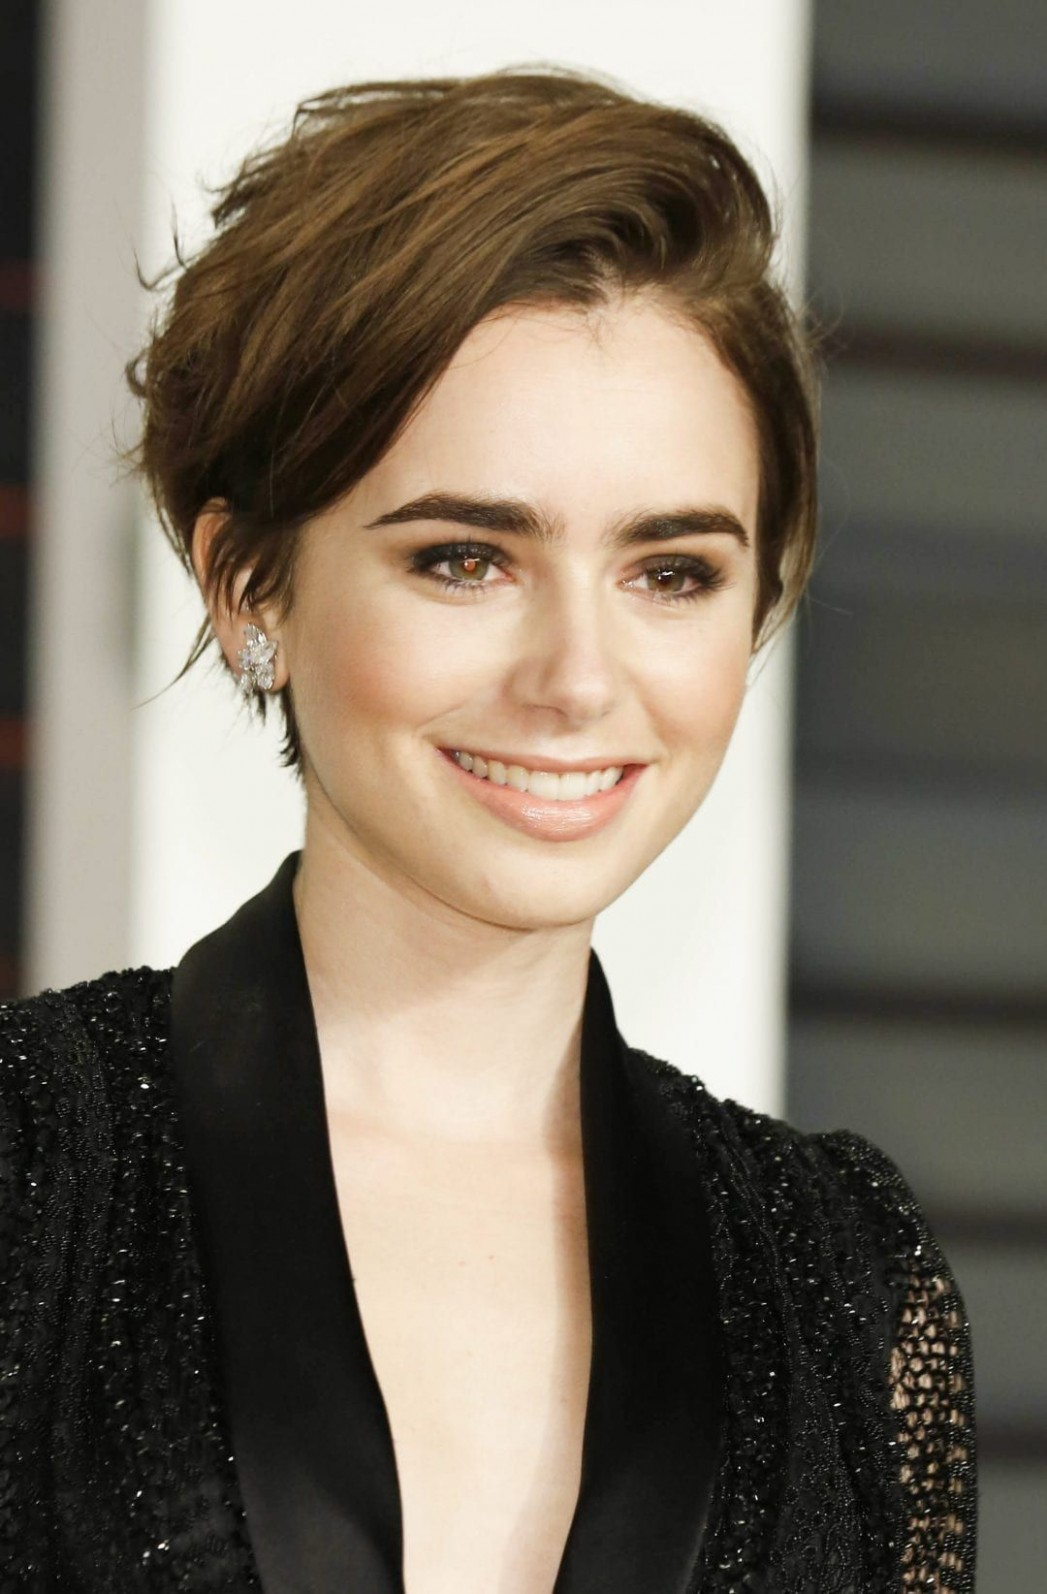 10 Latest Short Hairstyles For Women For 10 Celebrity Short Celebrity Short Hairstyles